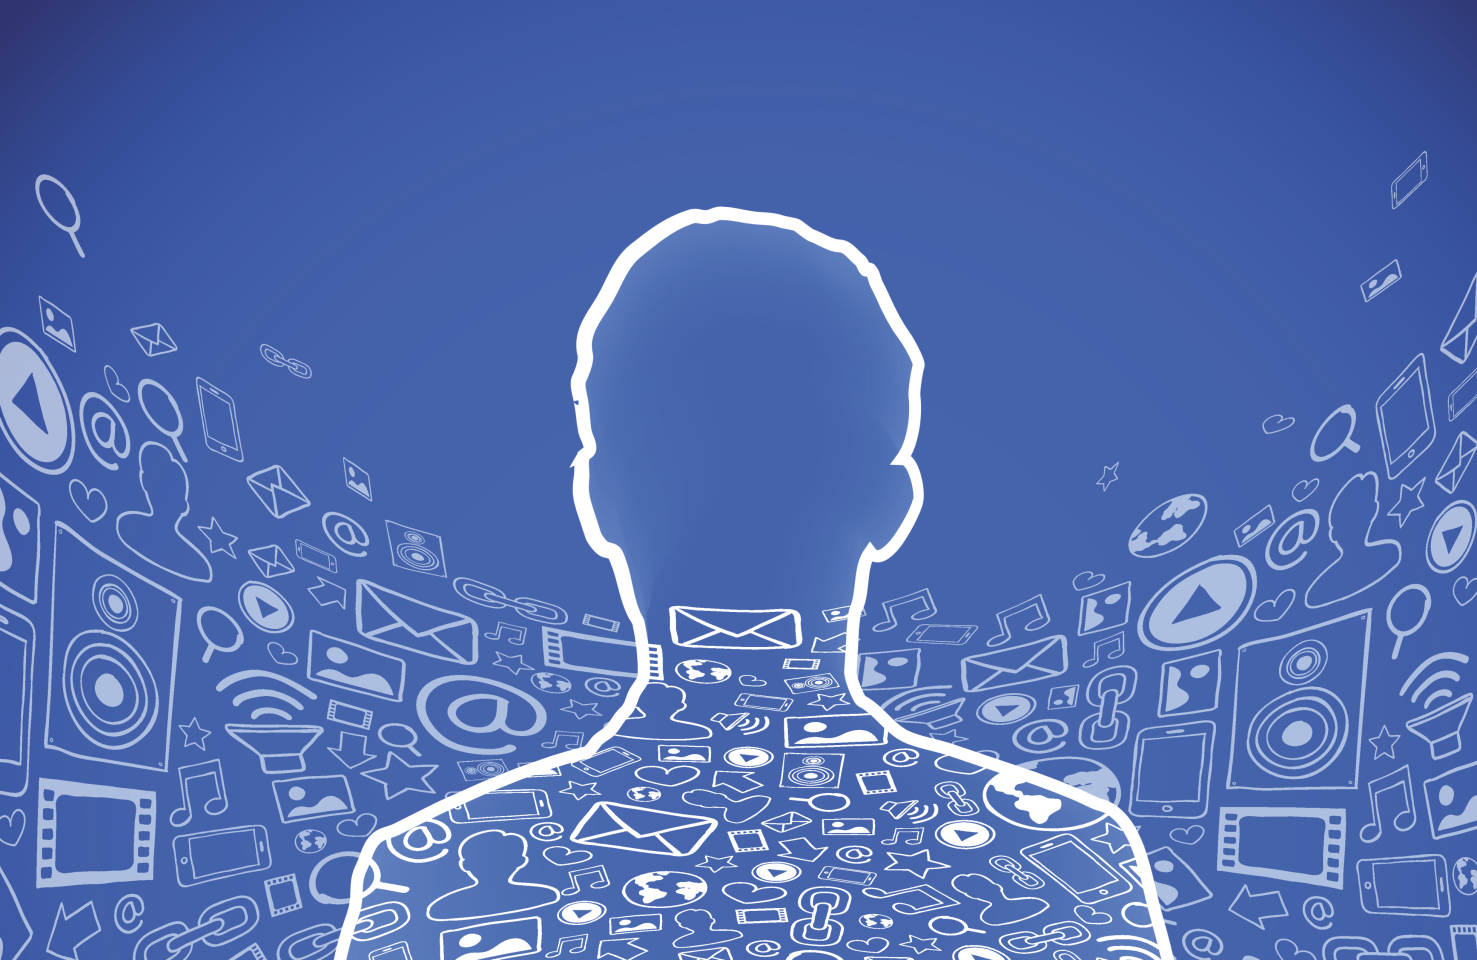 facebook head outline on blue background with facebook imagery